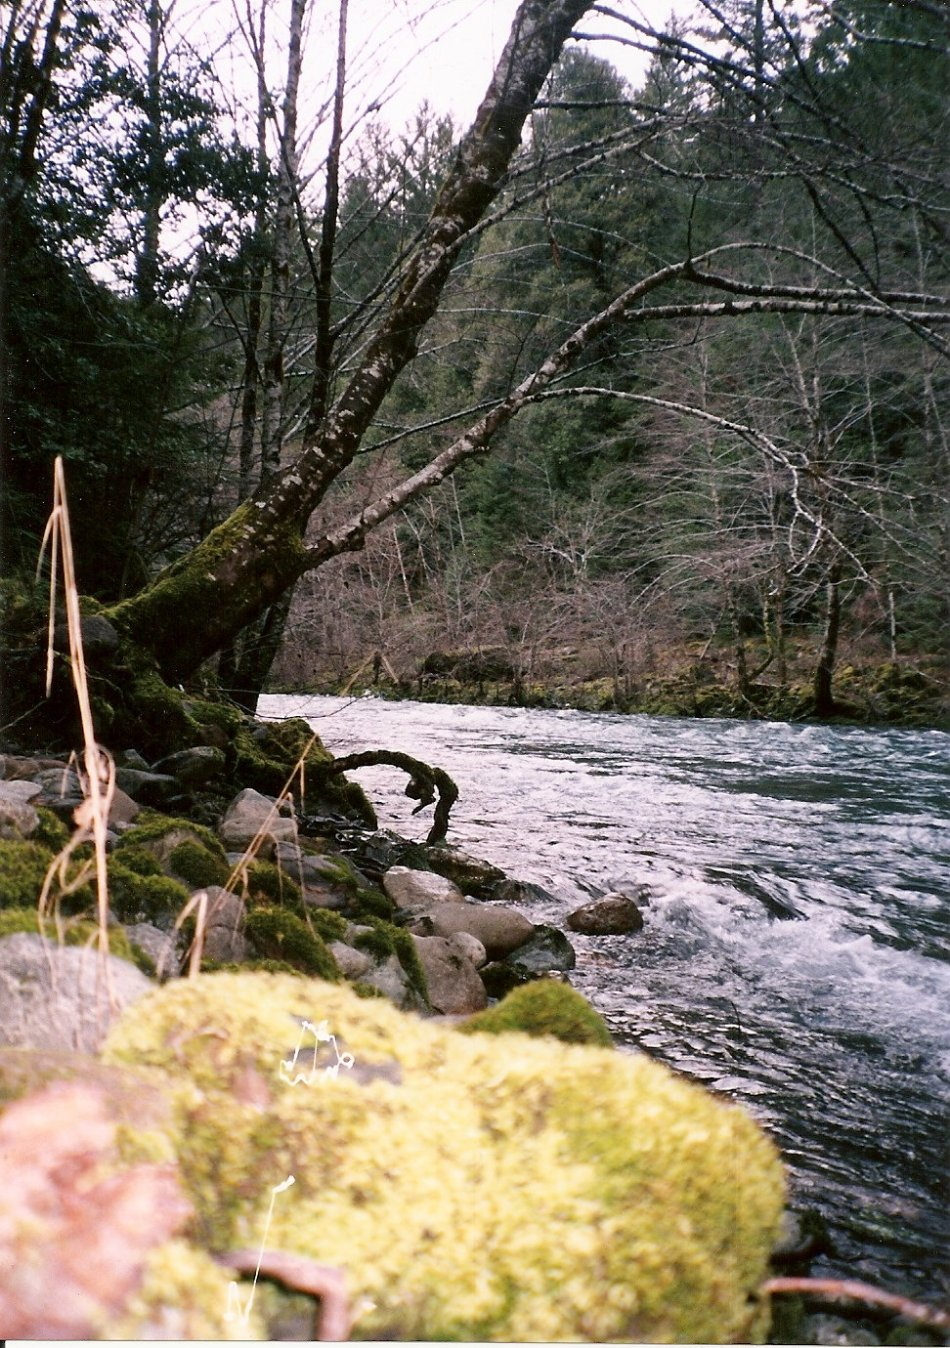 STRANGE LIGHT IN THE GREEN MOSS BY THE SMITH RIVER (FILM)